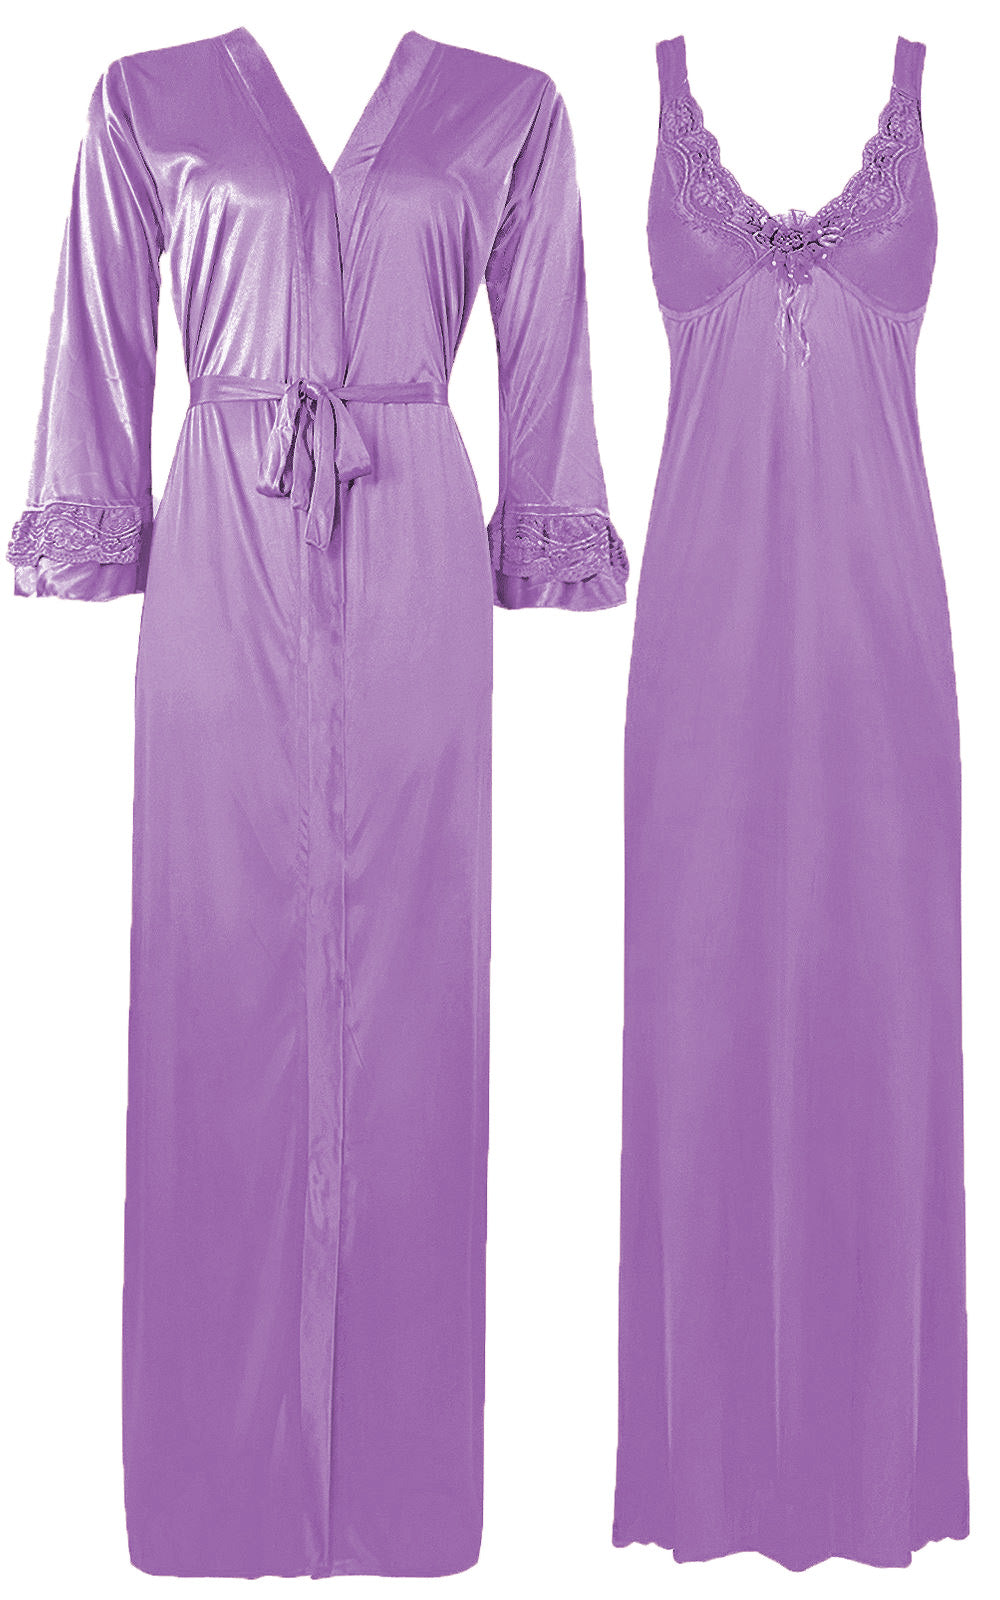 Color: Rose 2 Piece Satin Nighty and Robe With Long Sleeve Dressing Gown Size: XL